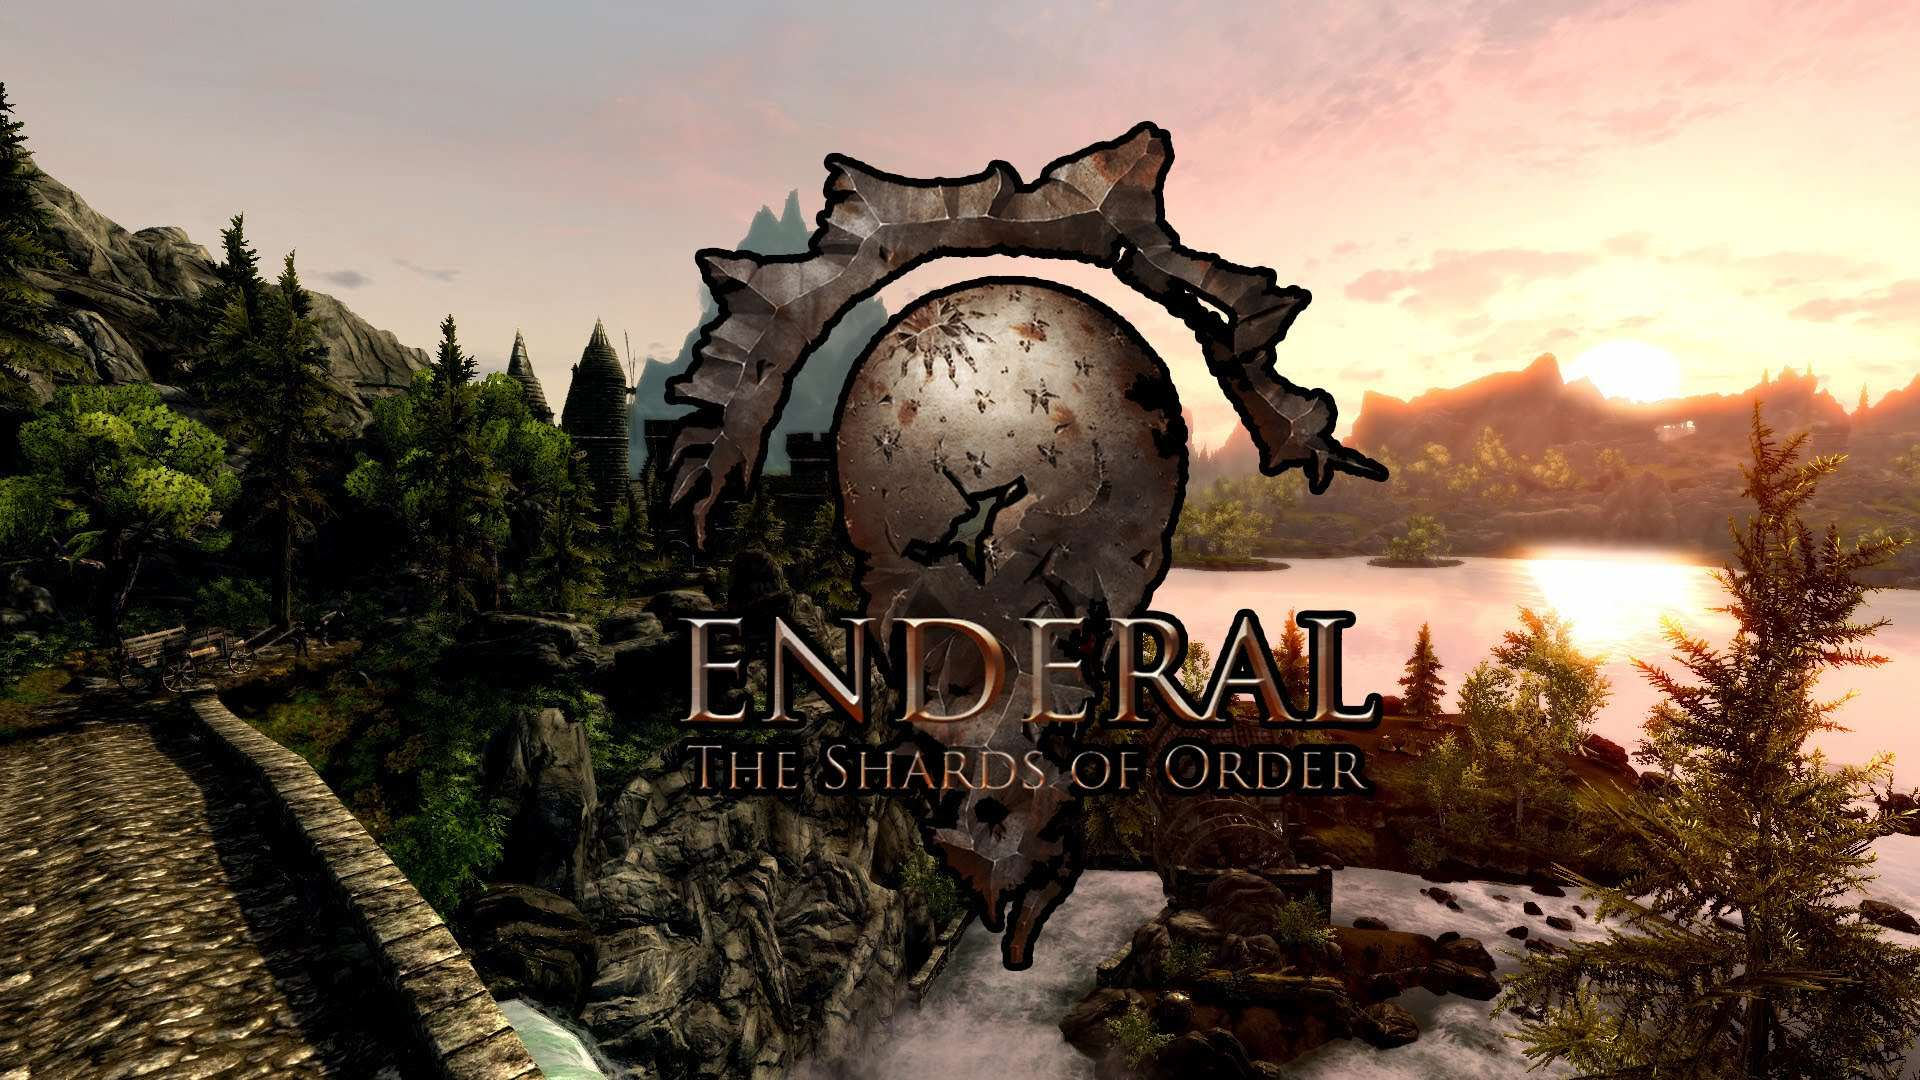 maxresdefault 1 11 Skyrims Breathtaking Total Conversion Mod, Enderal, Is Now Available